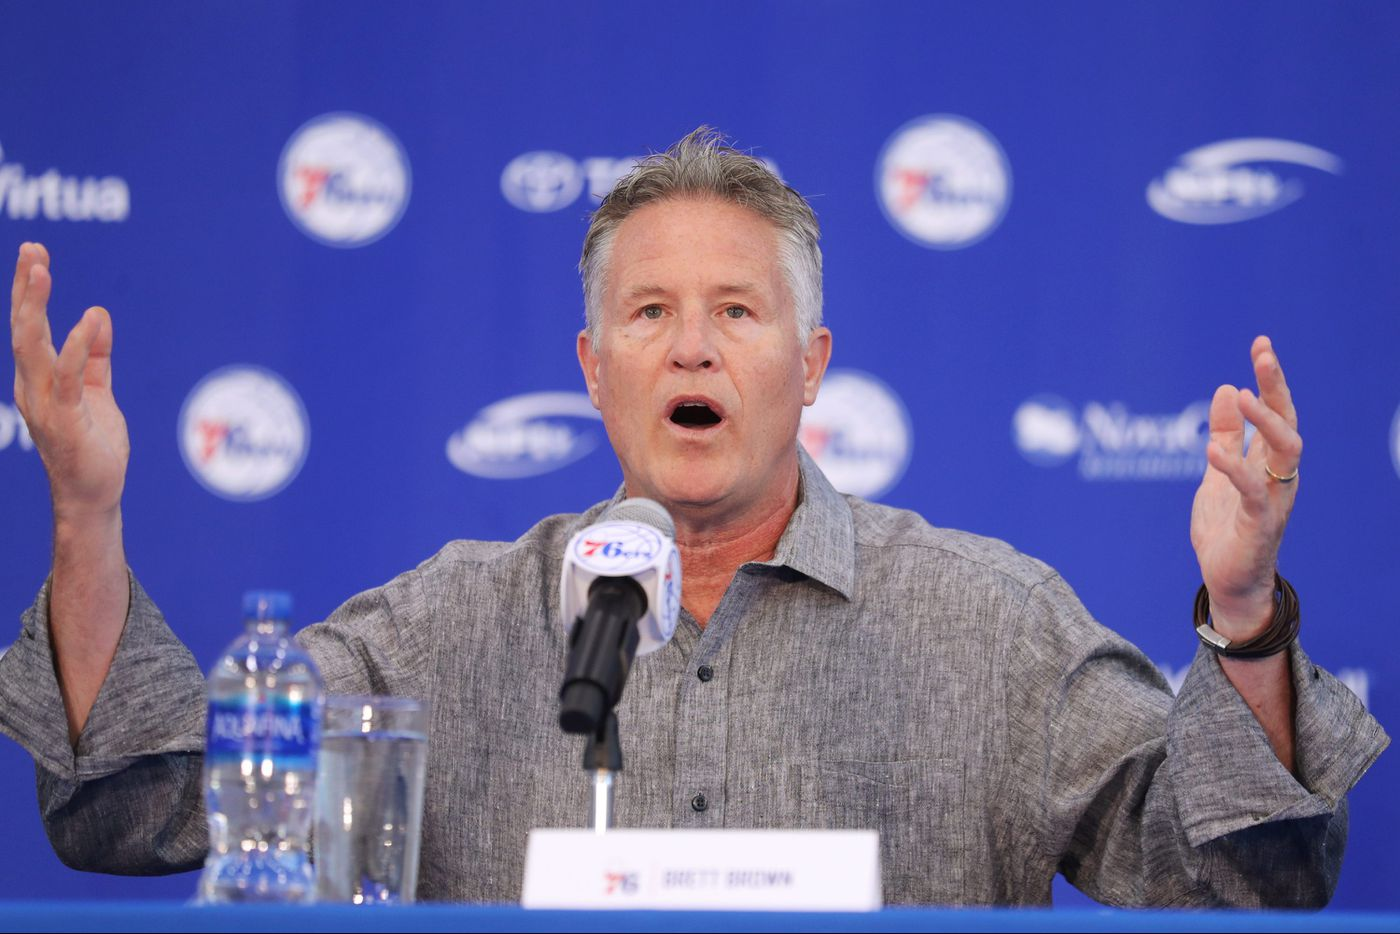 Sixers wisely leave Brett Brown in power | Marcus Hayes